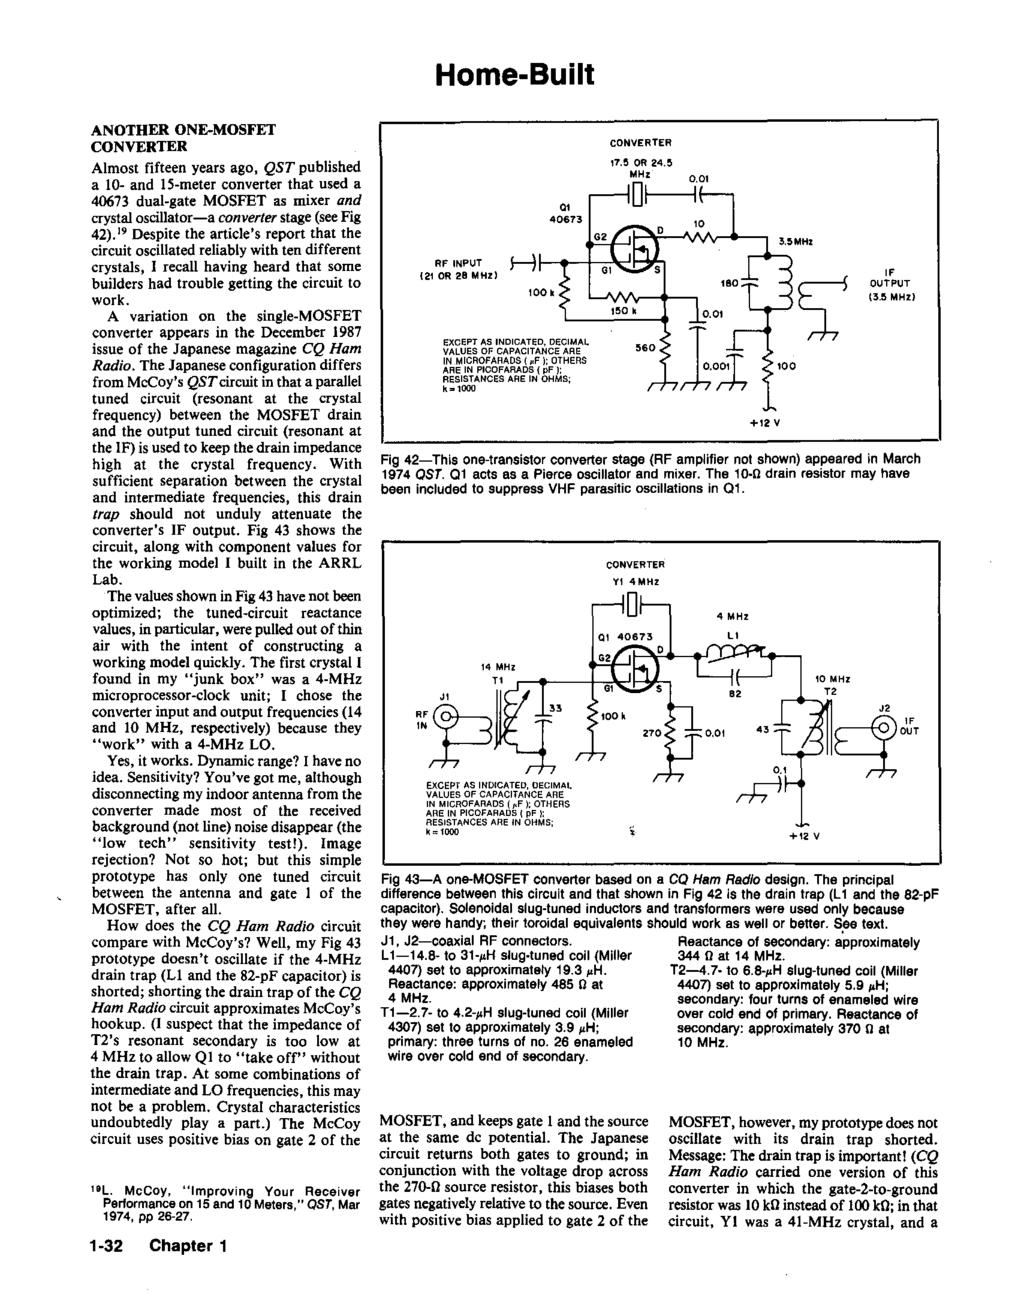 Hints And Kinks For The Radio Amateur Pdf Lm386 As Multipurpose Circuit Diagram Audiocircuit Home Built Another One Mosfet Converter Almost Fifteen Years Ago Qst Published A